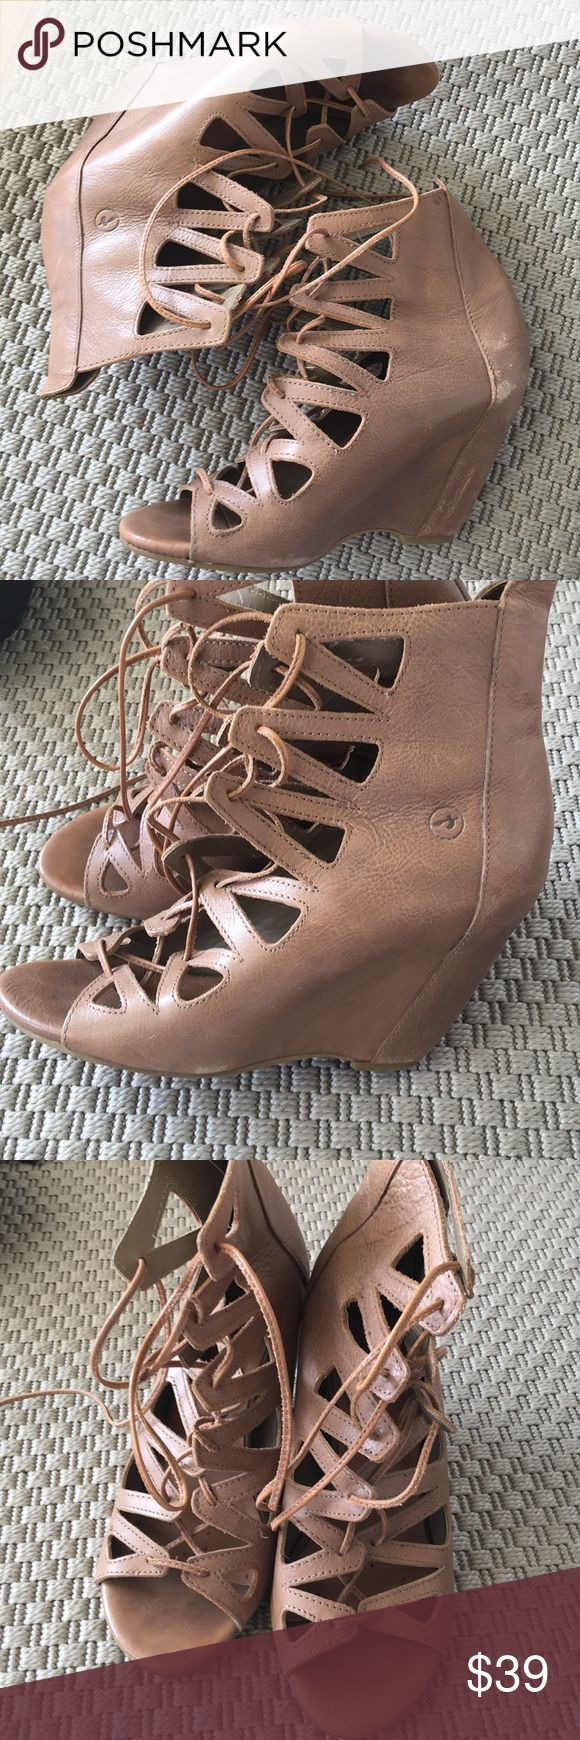 Bronx Lace Up Wedges Size 39 Neutral colored Bronx Lace up gladiators coveted by bloggers! Super comfy with covered wedges. Some toe marks and scuffs at heels. Super cute with floaty summer dresses! bronx Shoes Wedges